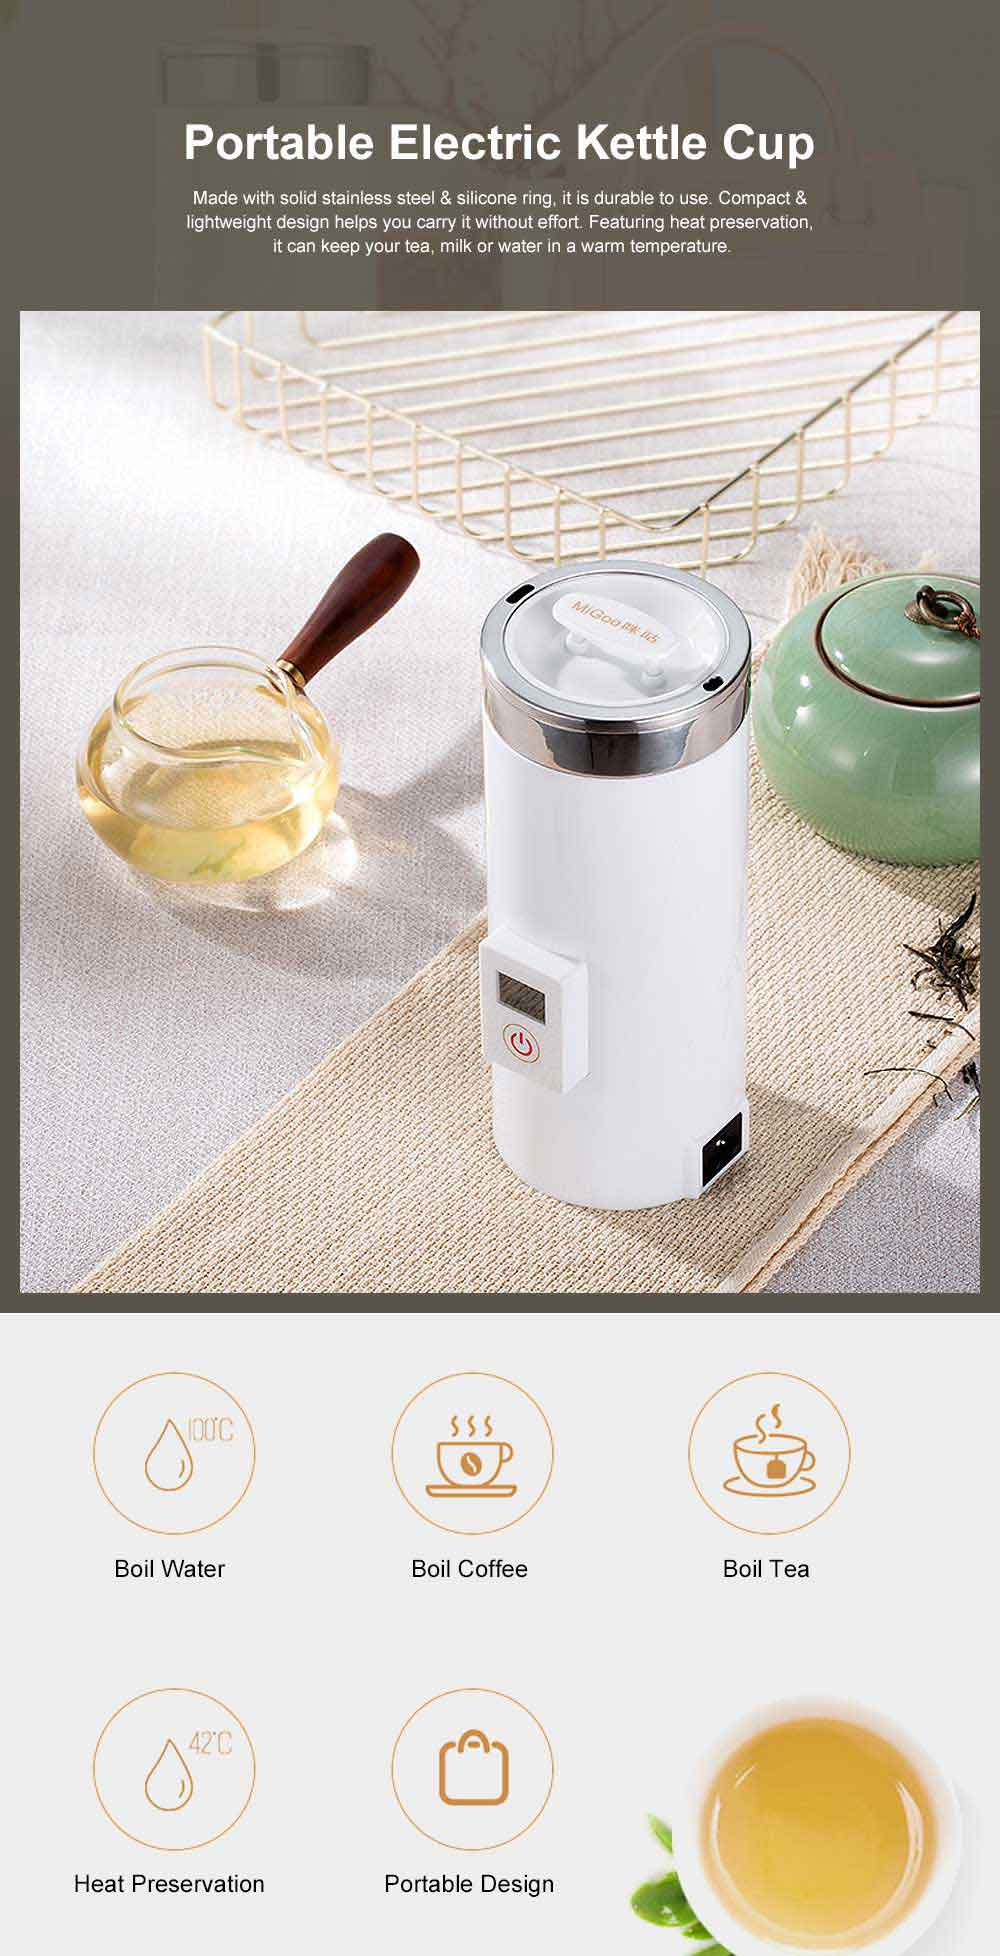 Portable Electric Kettle Cup Stainless Steel Water Boiler Durable Silicone Ring One Key Operation Coffee Milk Heating Container 0